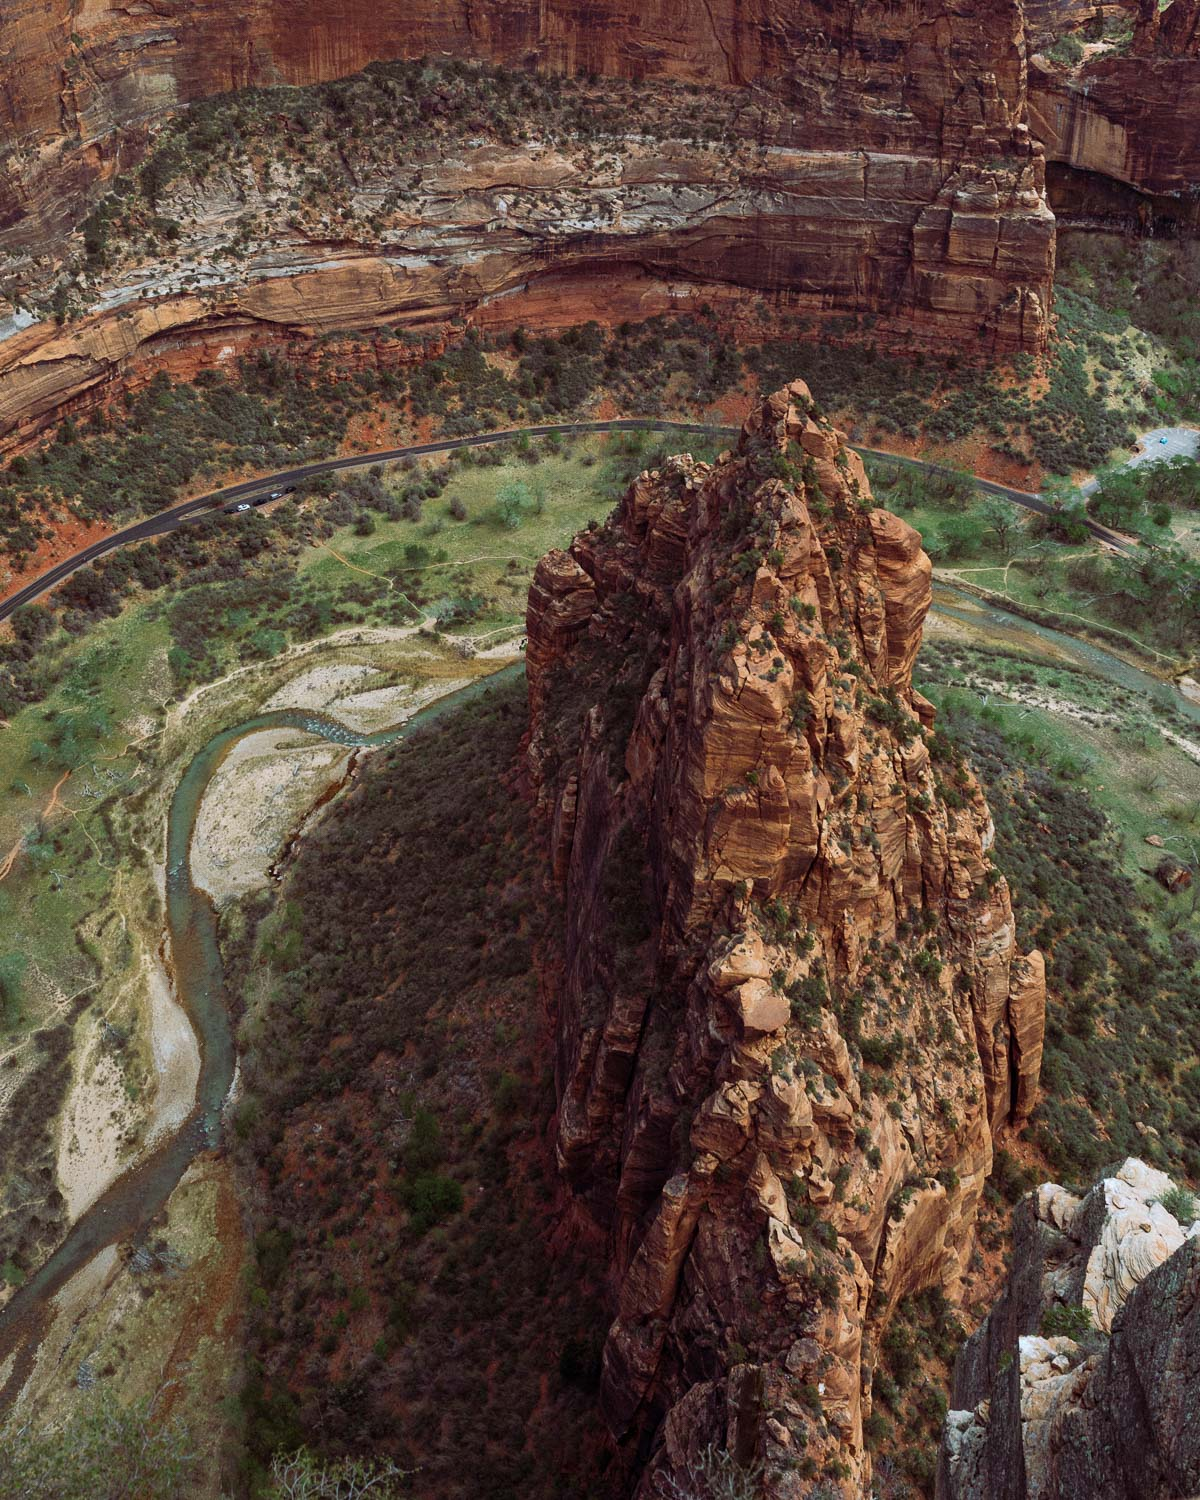 Rachel Off Duty: The View From the Top of Angel's Landing in Zion National Park